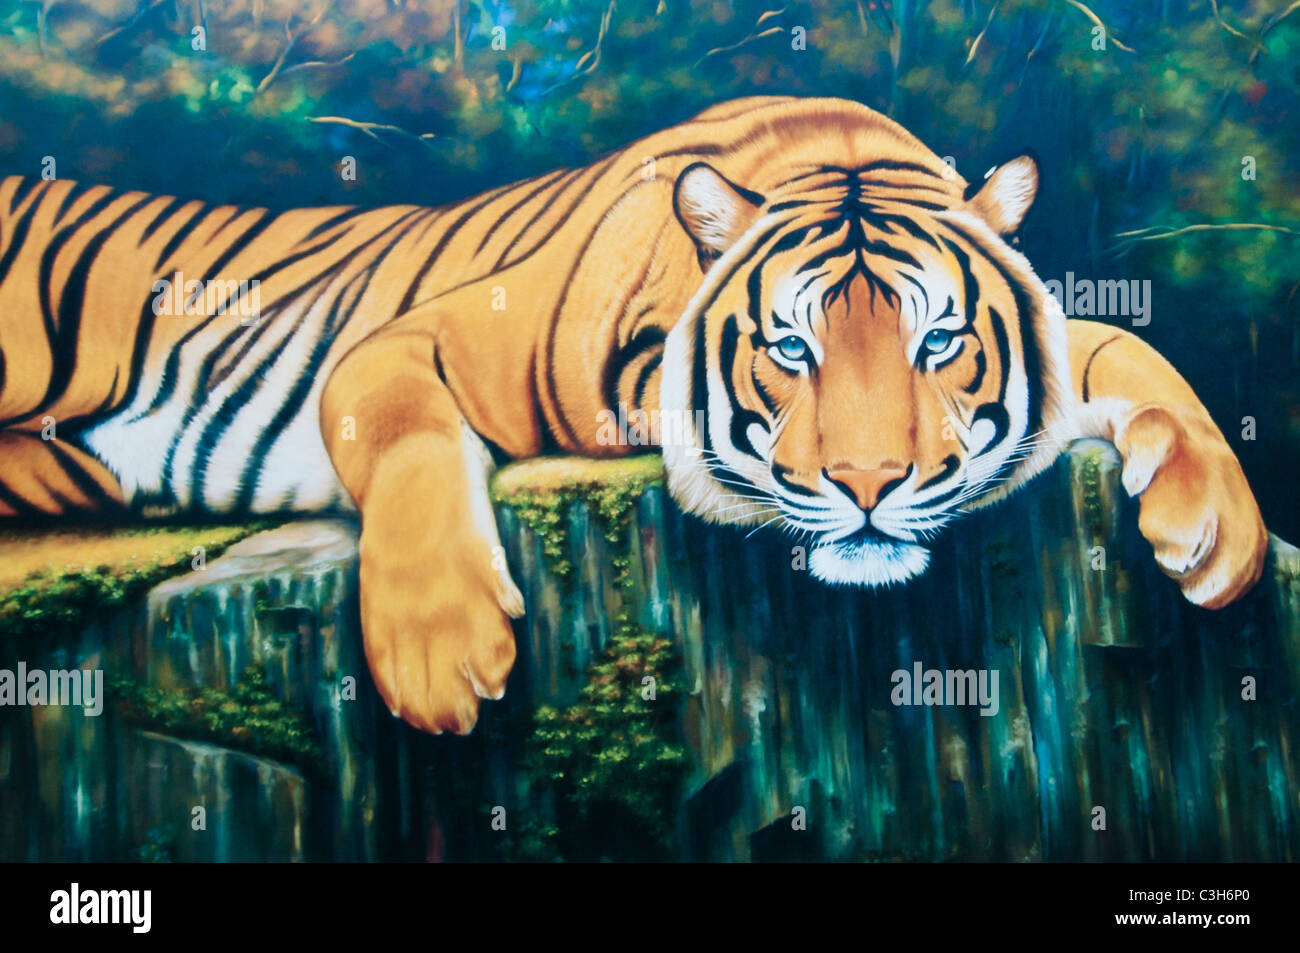 Male Tiger resting - oil painting - Stock Image